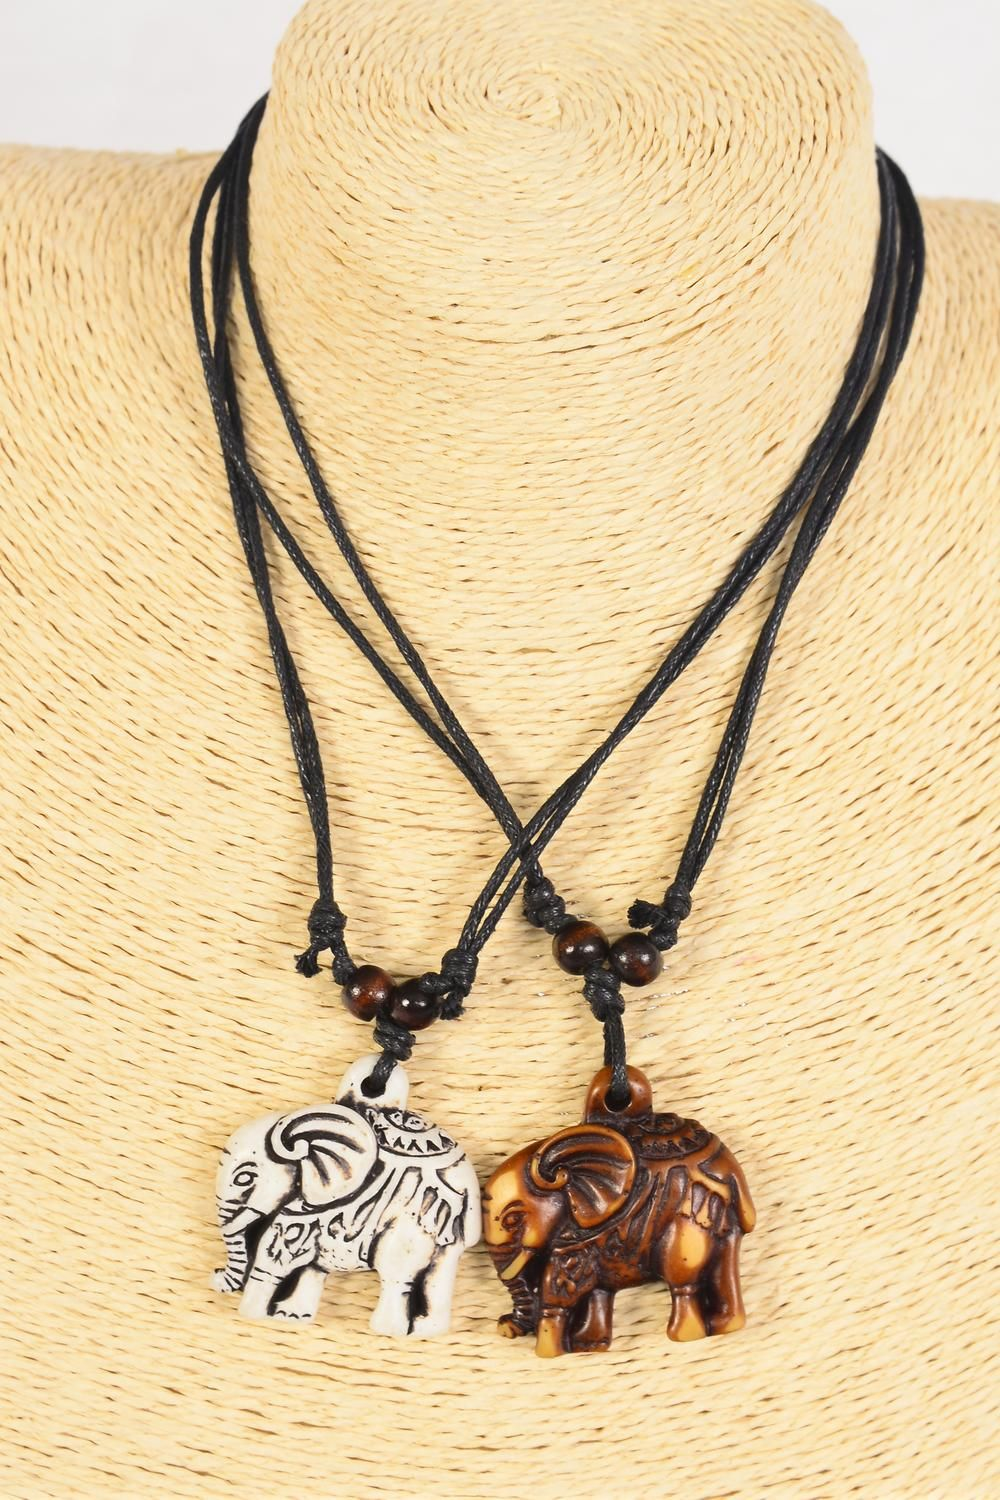 "Men's Necklace Elephant Poly Black & Brown Asst/DZ **Adjustable** ElephantSize-1.5""x 1.5"" Wide,6 Black & 6 Brown Mix,6 of each Color Asst,Hang Tag & OPP Bag & UPC Code -"